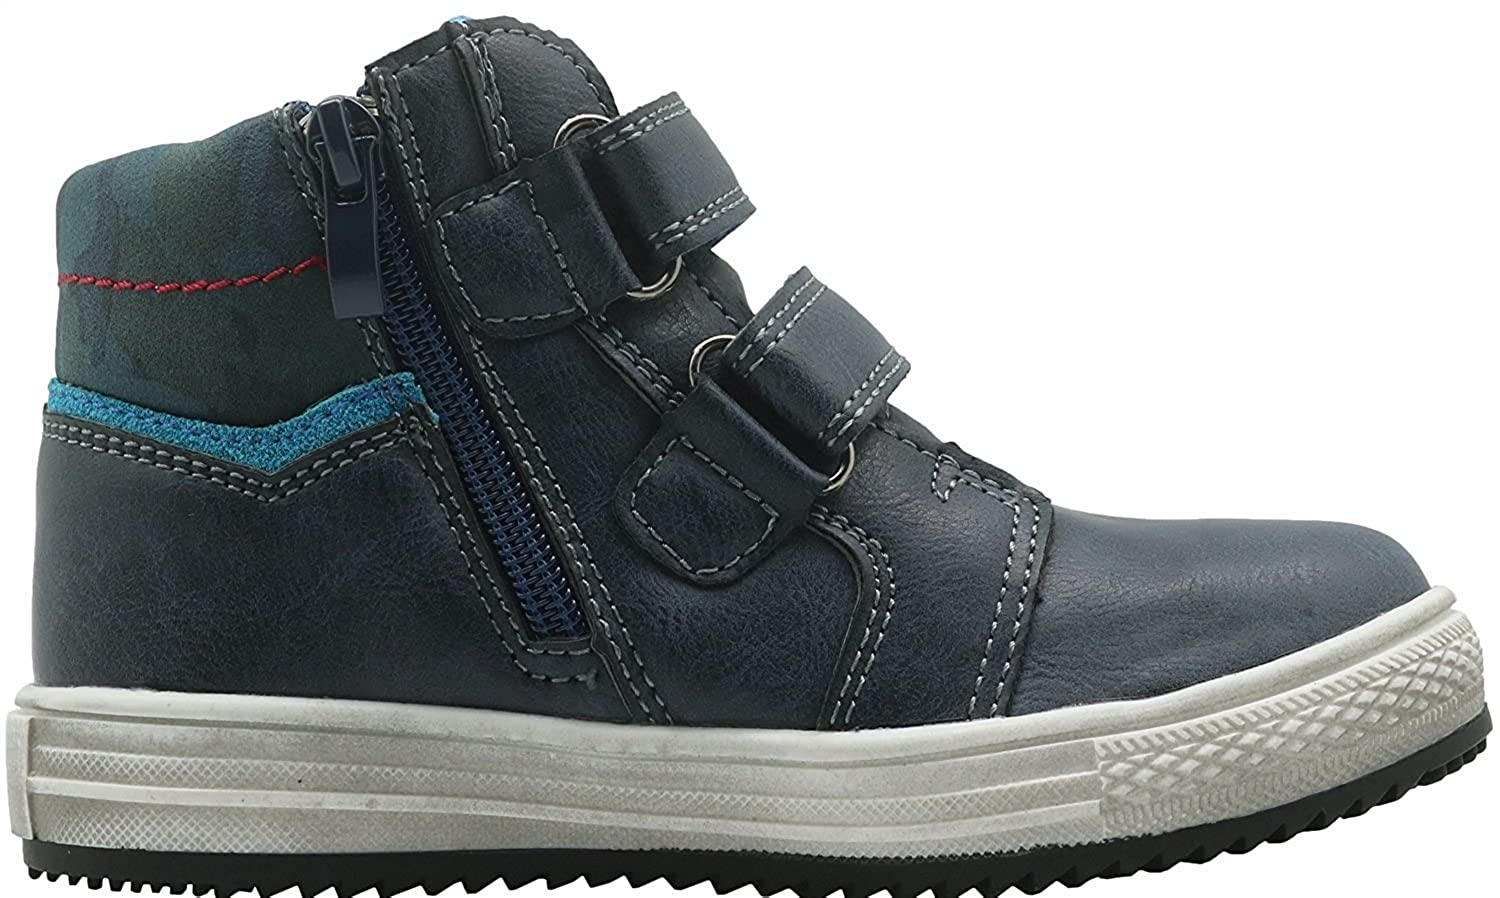 Tufanyu Kids Shoes Boys & Girls Autumn High Top Boots Ankle Sneaker Closed  Toe Velcro & Side Zipper Closure (Little Kid) No-Slip: Amazon.co.uk: Shoes &  Bags